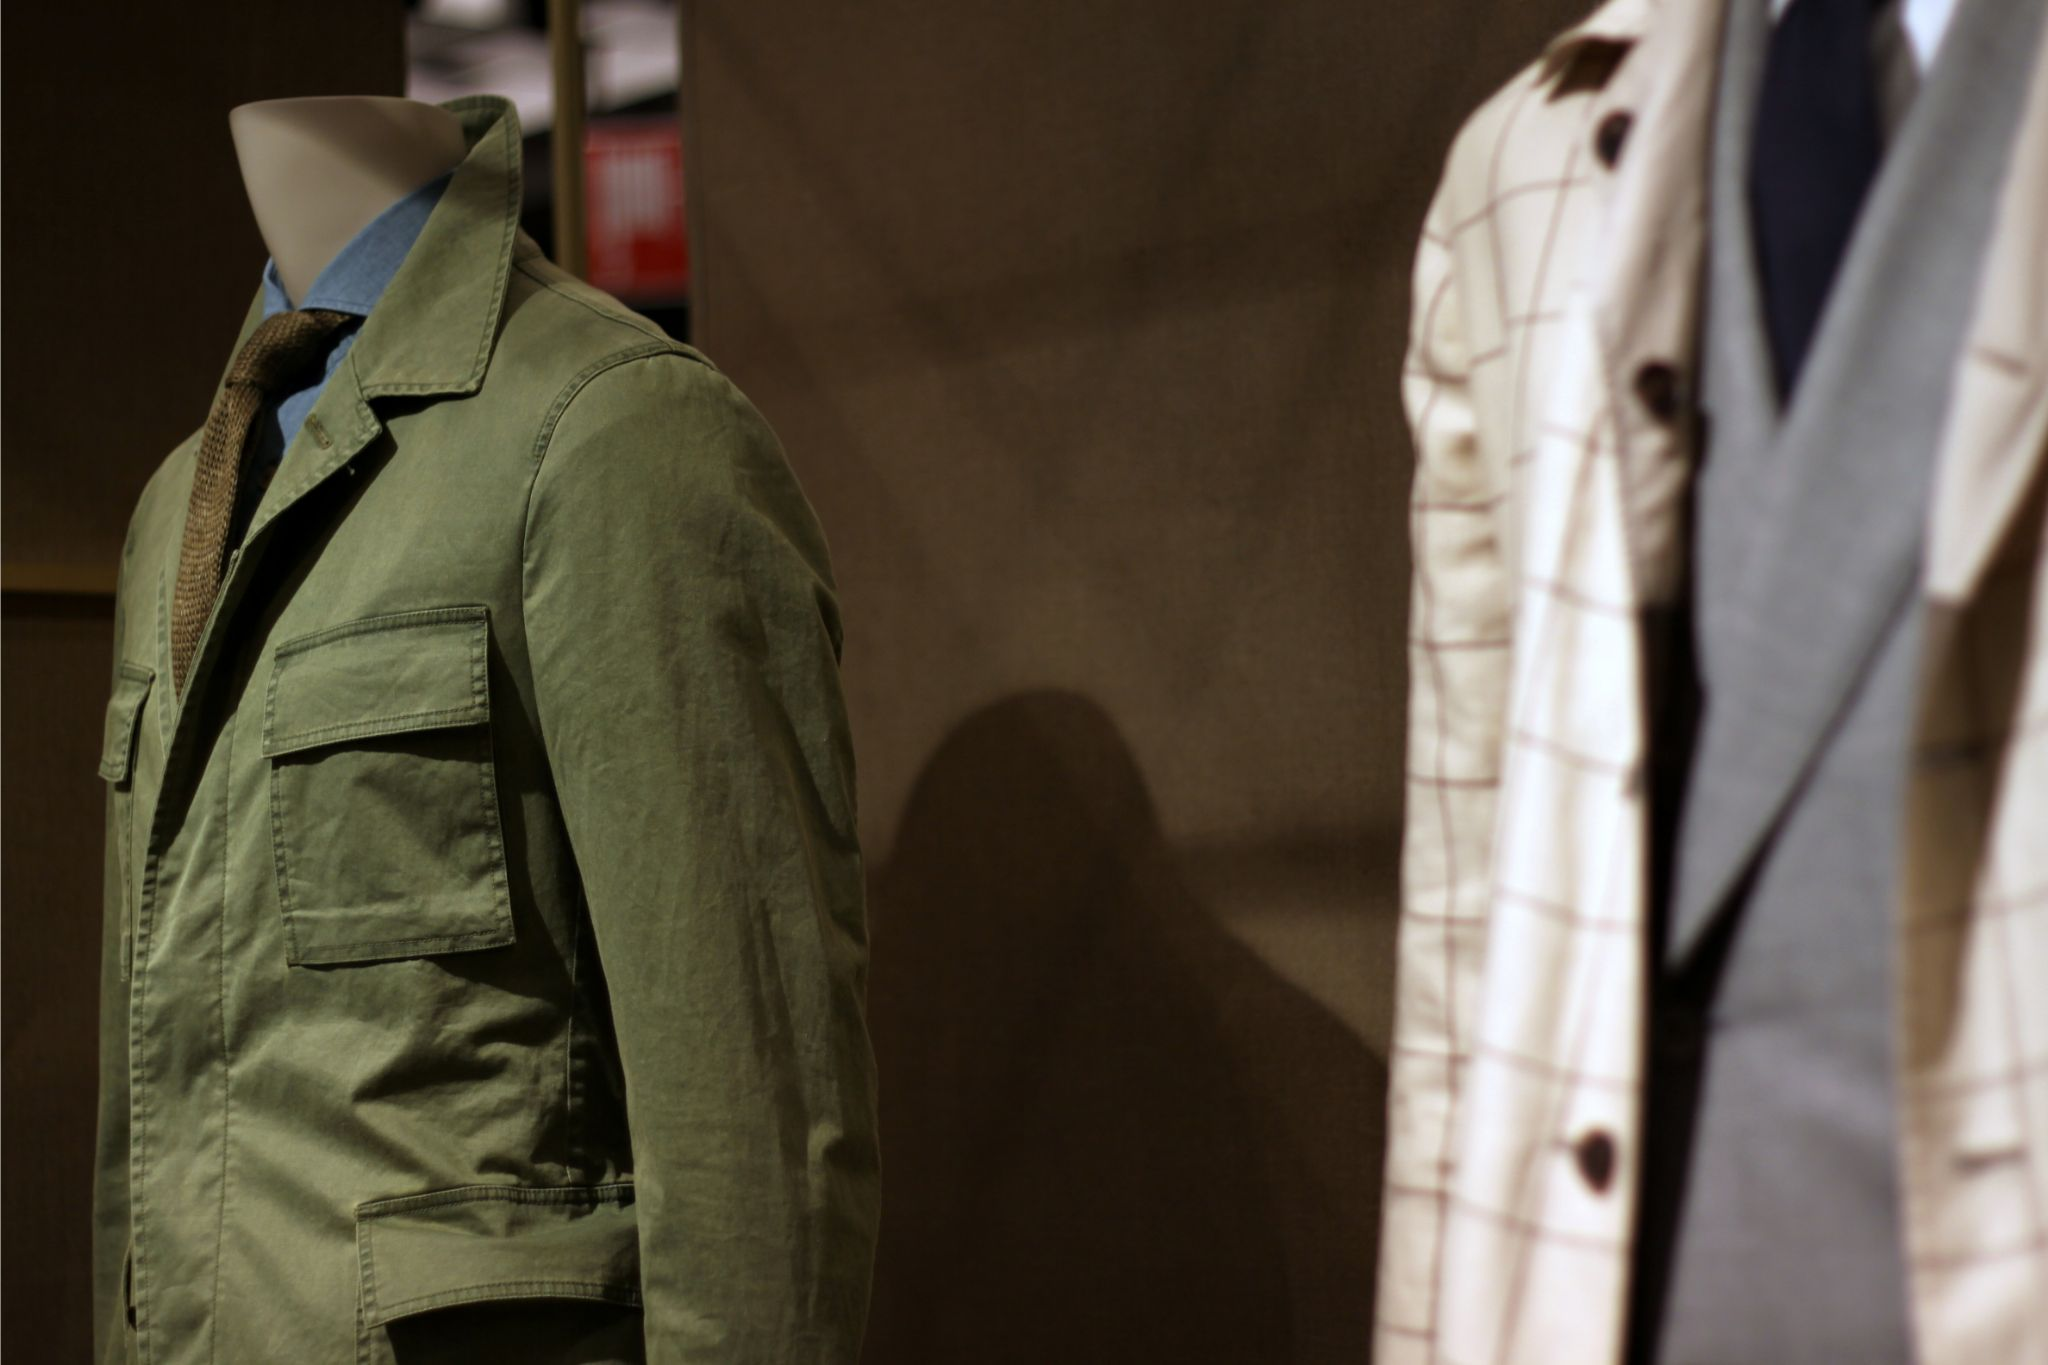 Pitti Uomo 90 Lardini casual wear